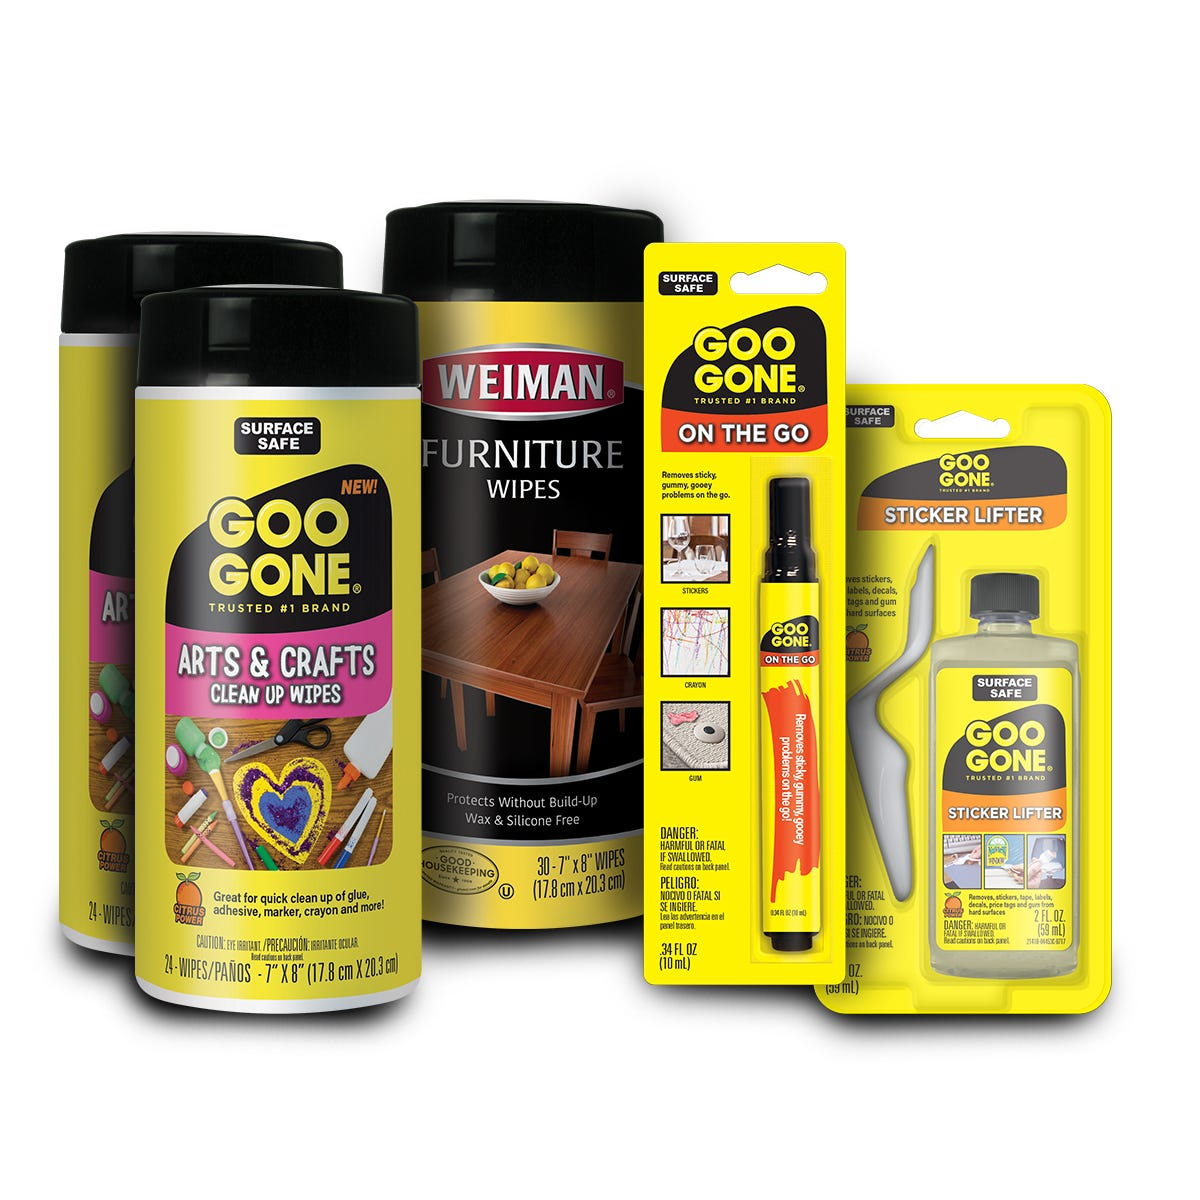 https://googone.com/media/catalog/product/a/r/arts_crafts_clean_up_kit_1.jpg